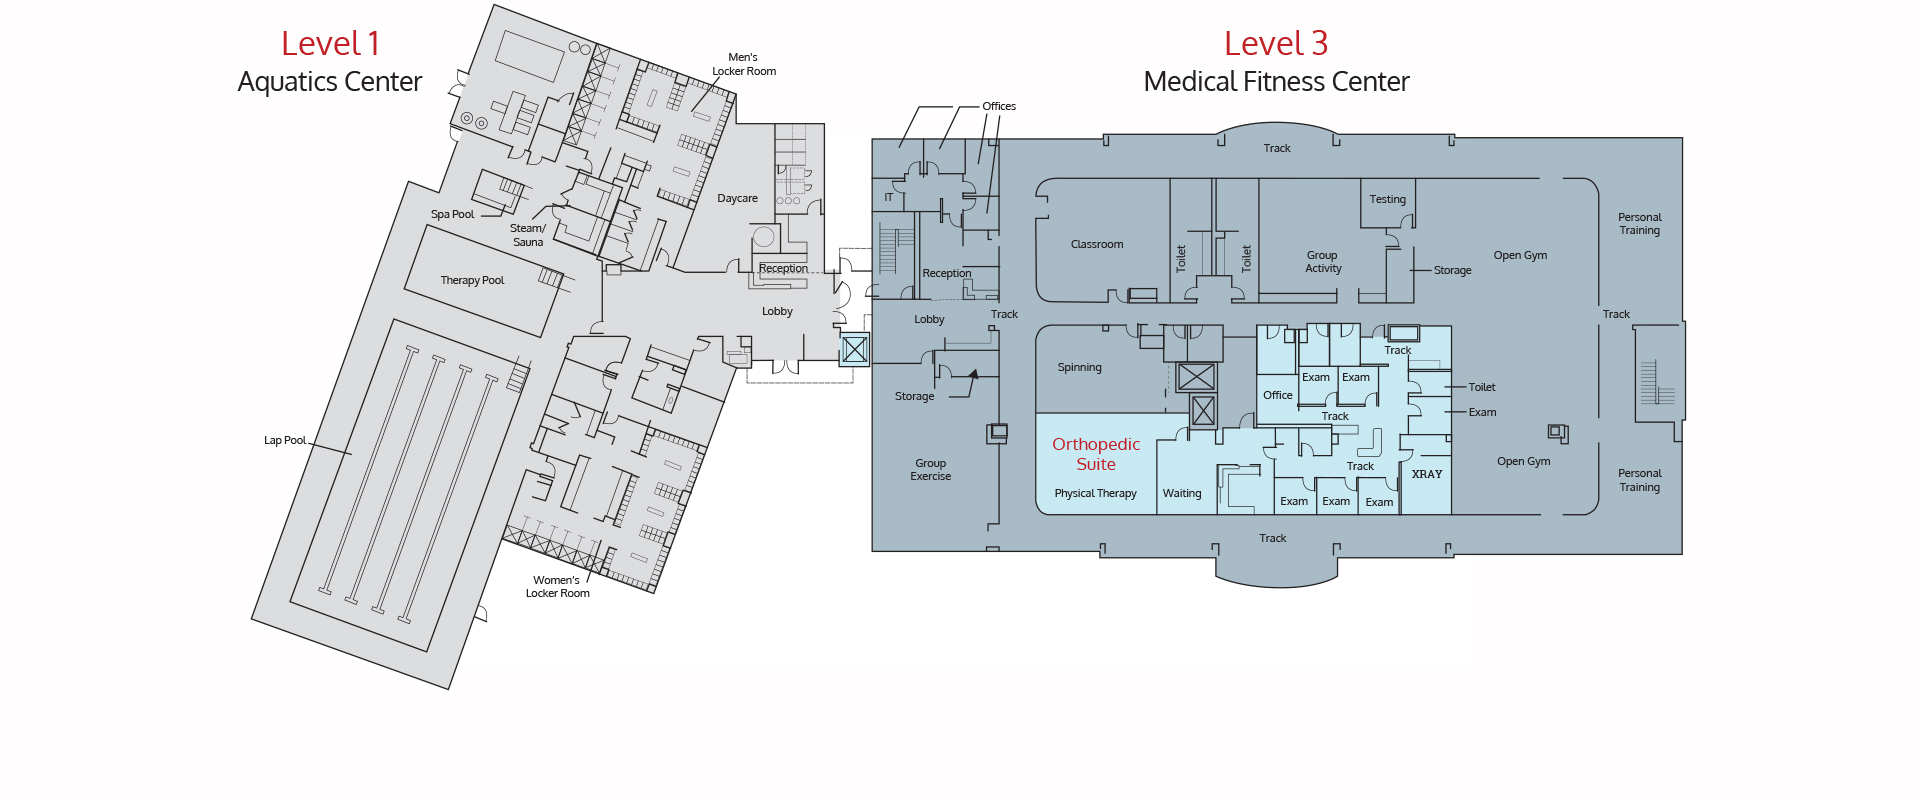 Child Care Centre Floor Plan Images. 100 Cancer Center Floor Plan ...